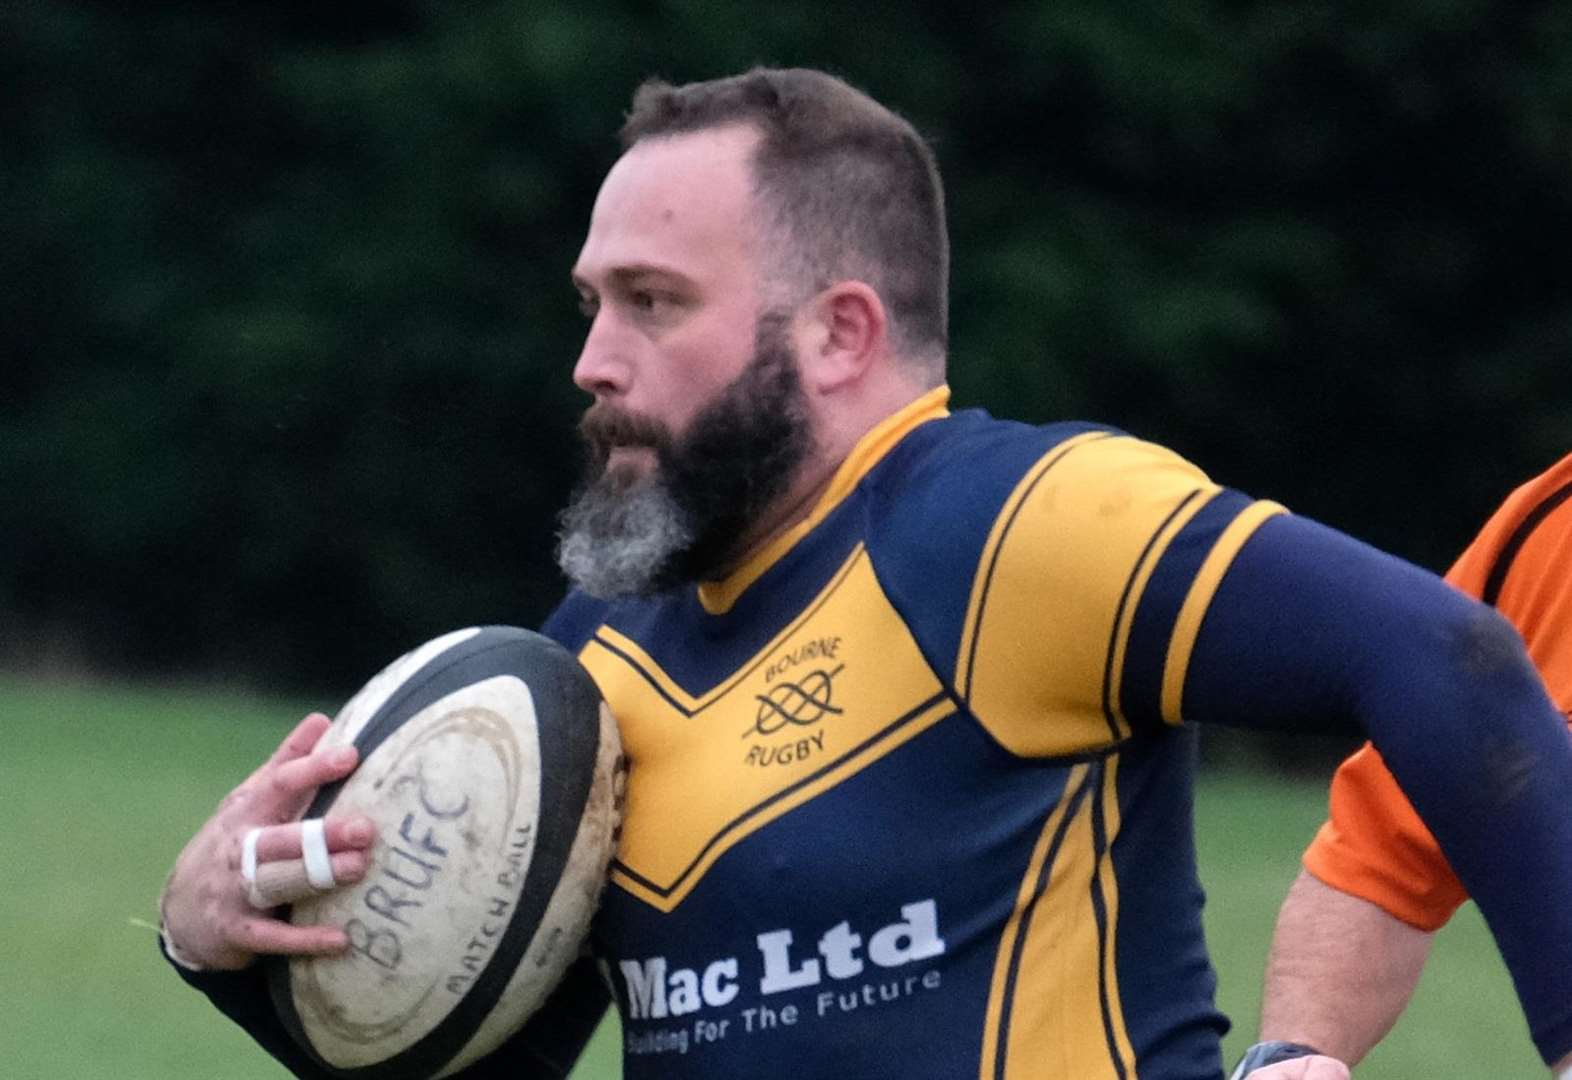 RUGBY UNION: Disappointing defeat as Bourne are beaten in long away trip